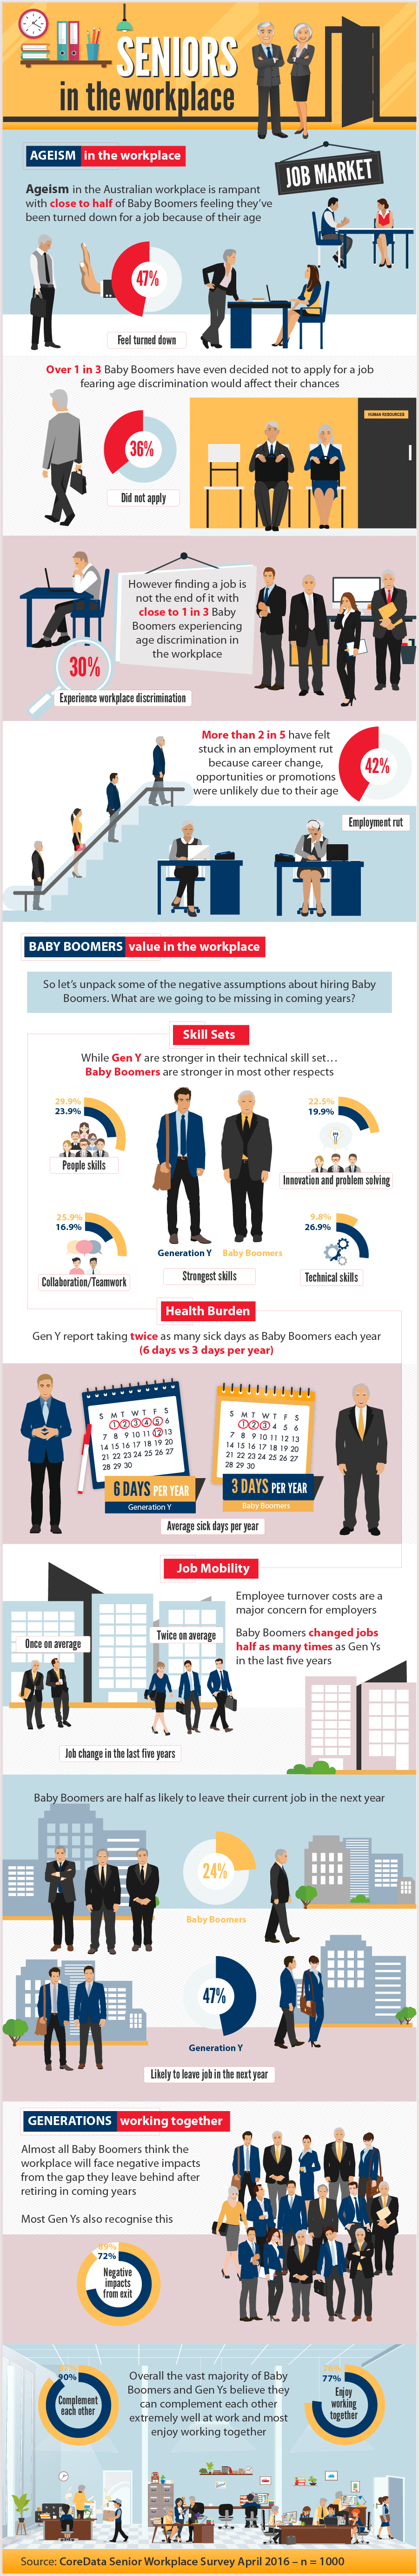 Infographic: Ageism in the workplace. Close to half of Baby Boomers feel they've been turned down for a job because of their age. But overall, the vast majority of Baby Boomers and Gen Ys believe they can complement each other extremely well at work. And most enjoy working together.